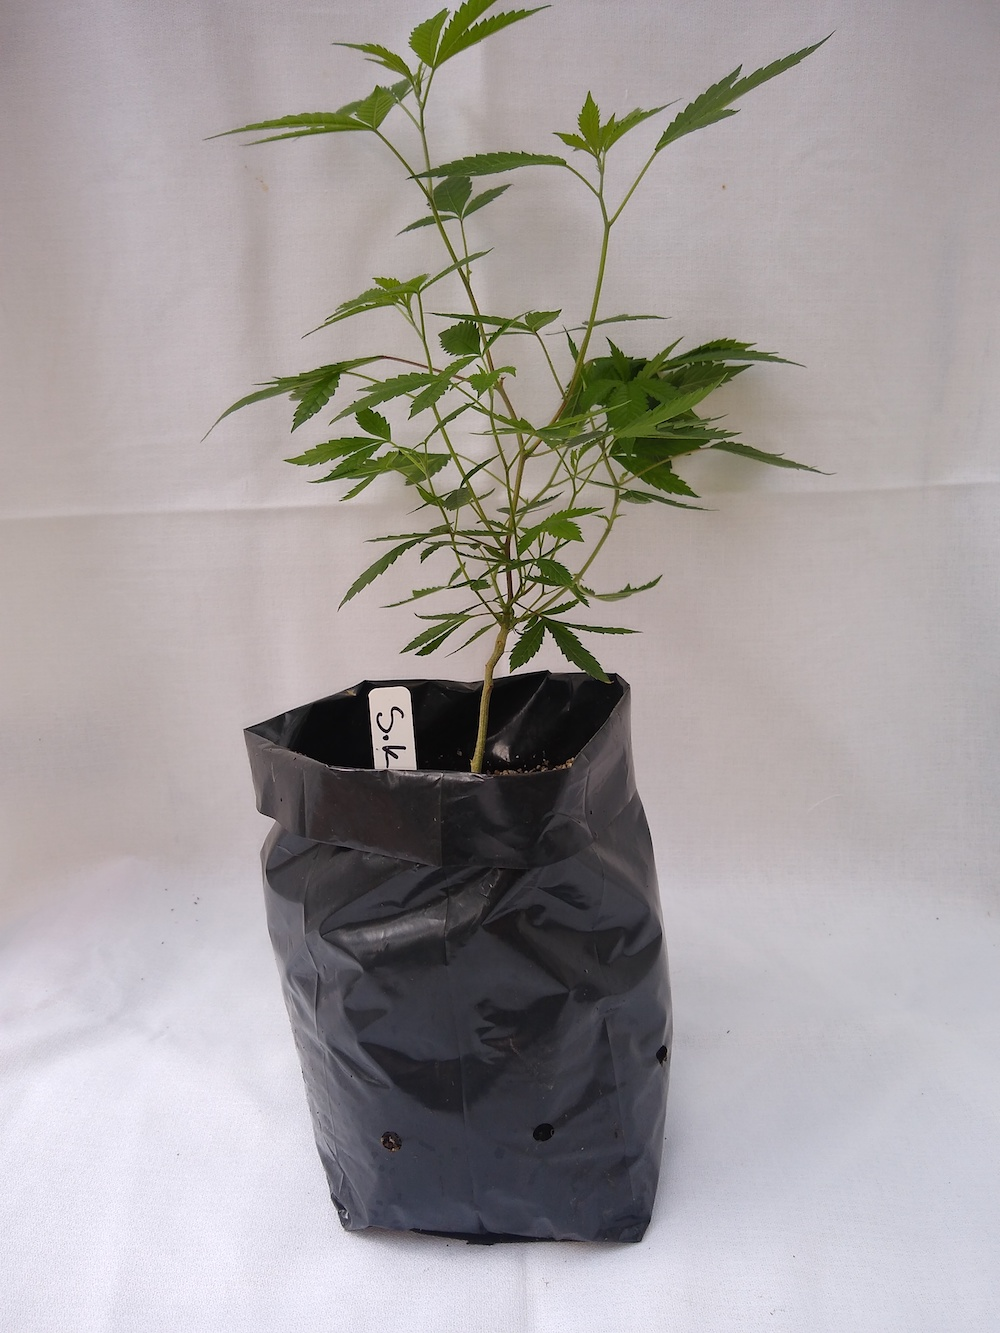 Sour Kush  - Hybrid  Genetics - (OG Kush x Sour Diesel)  Pre-teen staged and pre-rooted in rock wool, planted in organic soil   Suggested retail  - $25 each